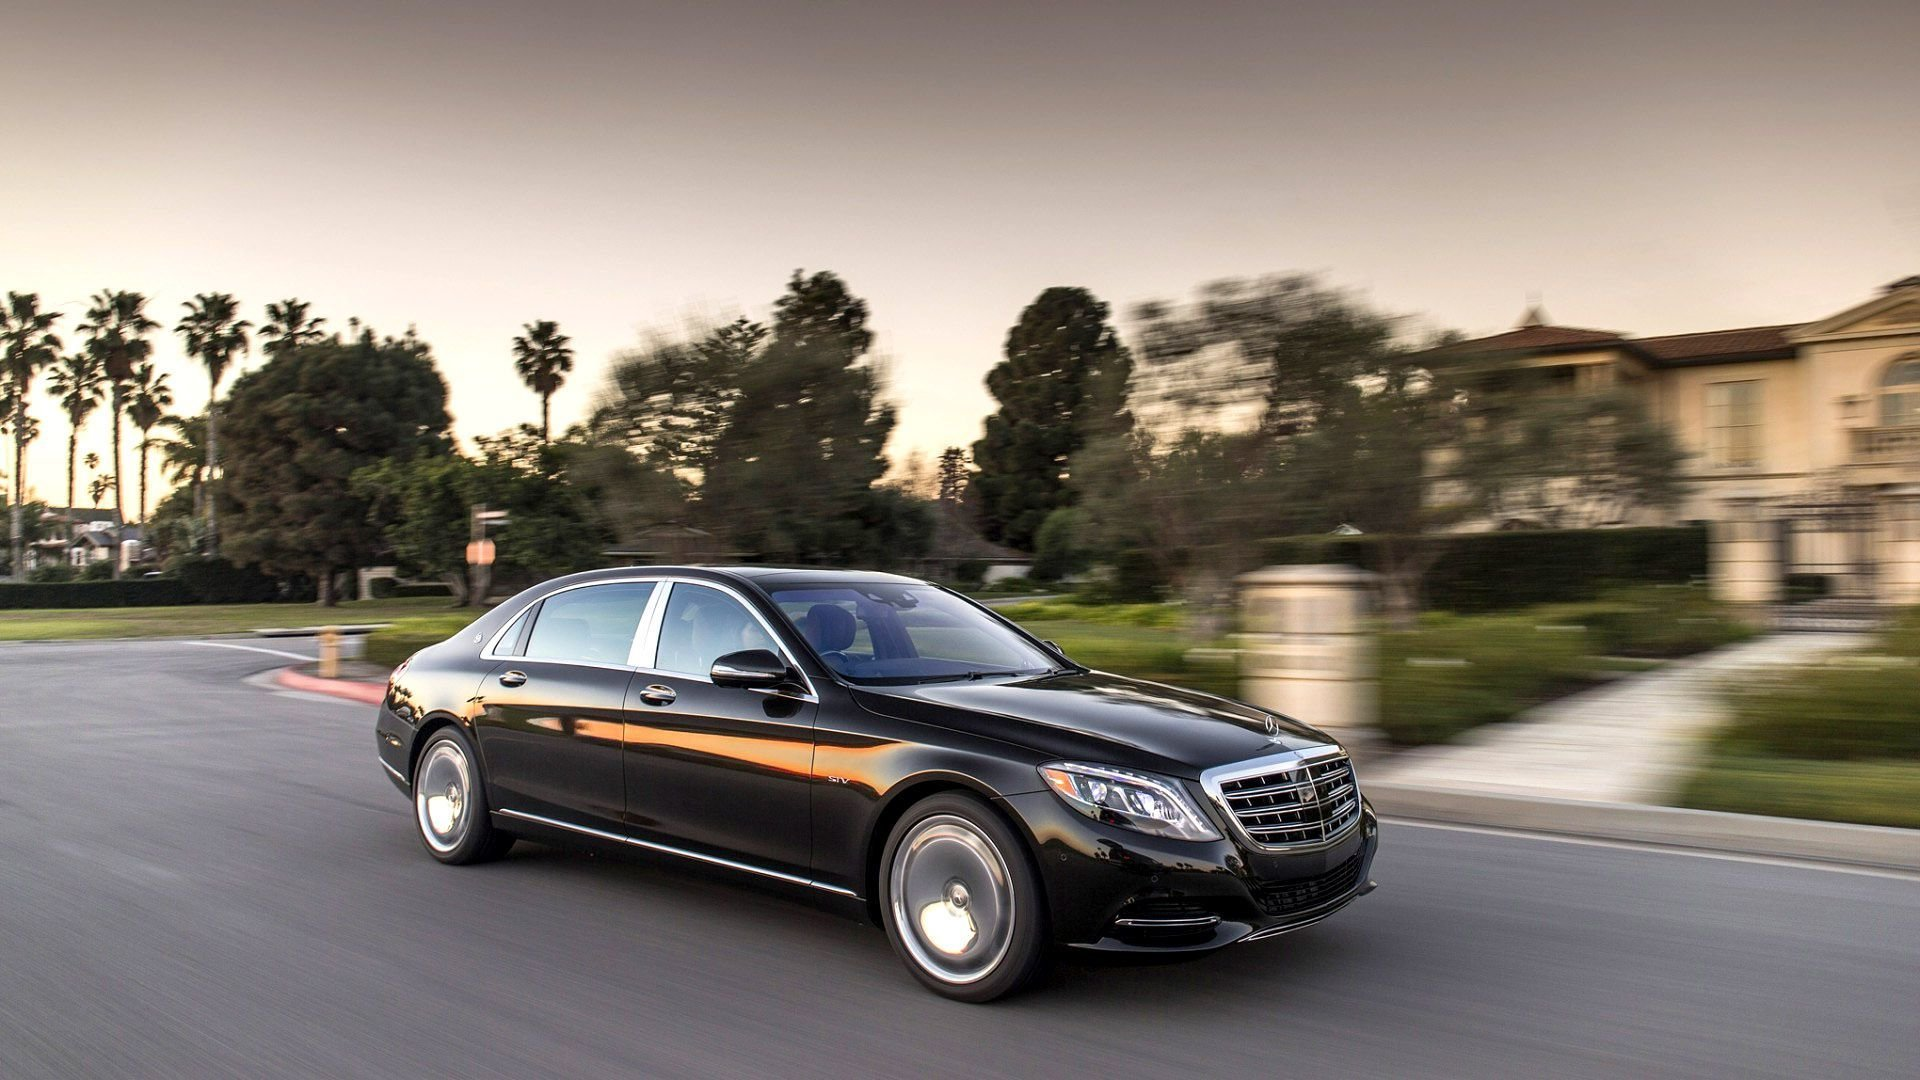 Latest 2015 Mercedes Maybach S600 Royal Car Wallpaper Car Hd Free Download